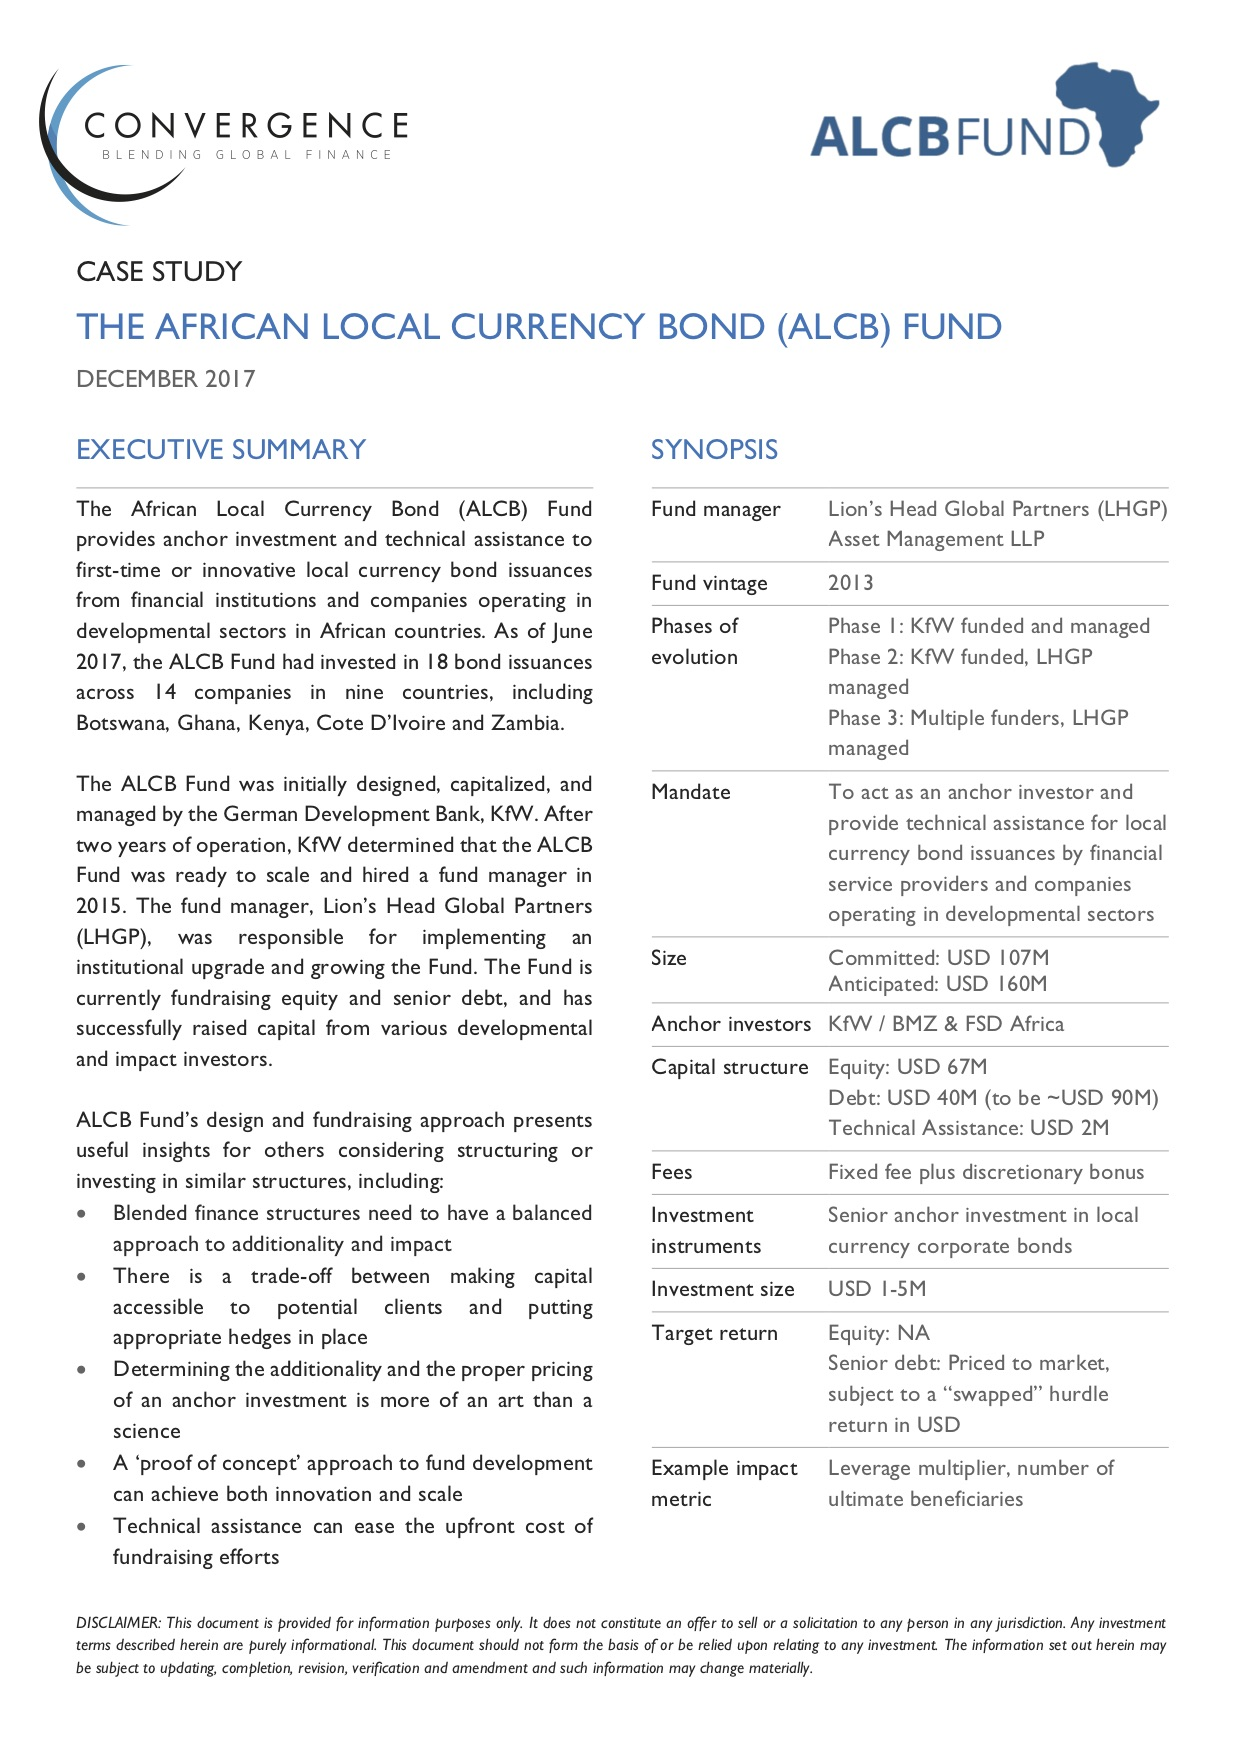 The African Local Currency Bond (ALCB) Fund